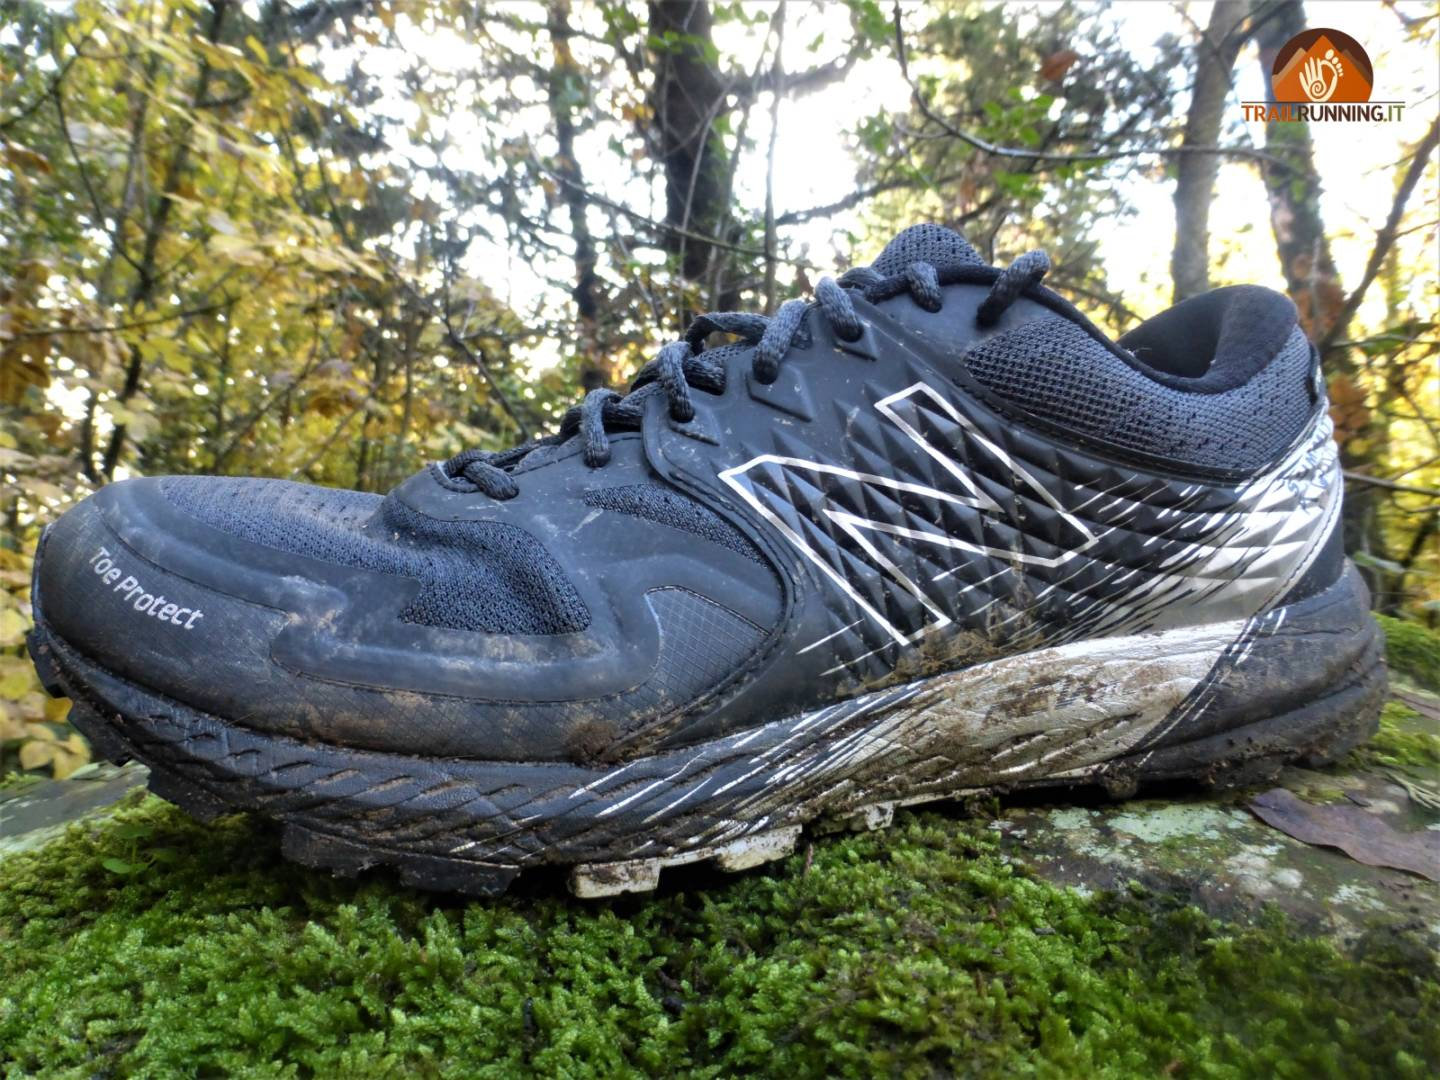 K GtxRecensione Balance Running Summit o New m Trail gbf6yvY7